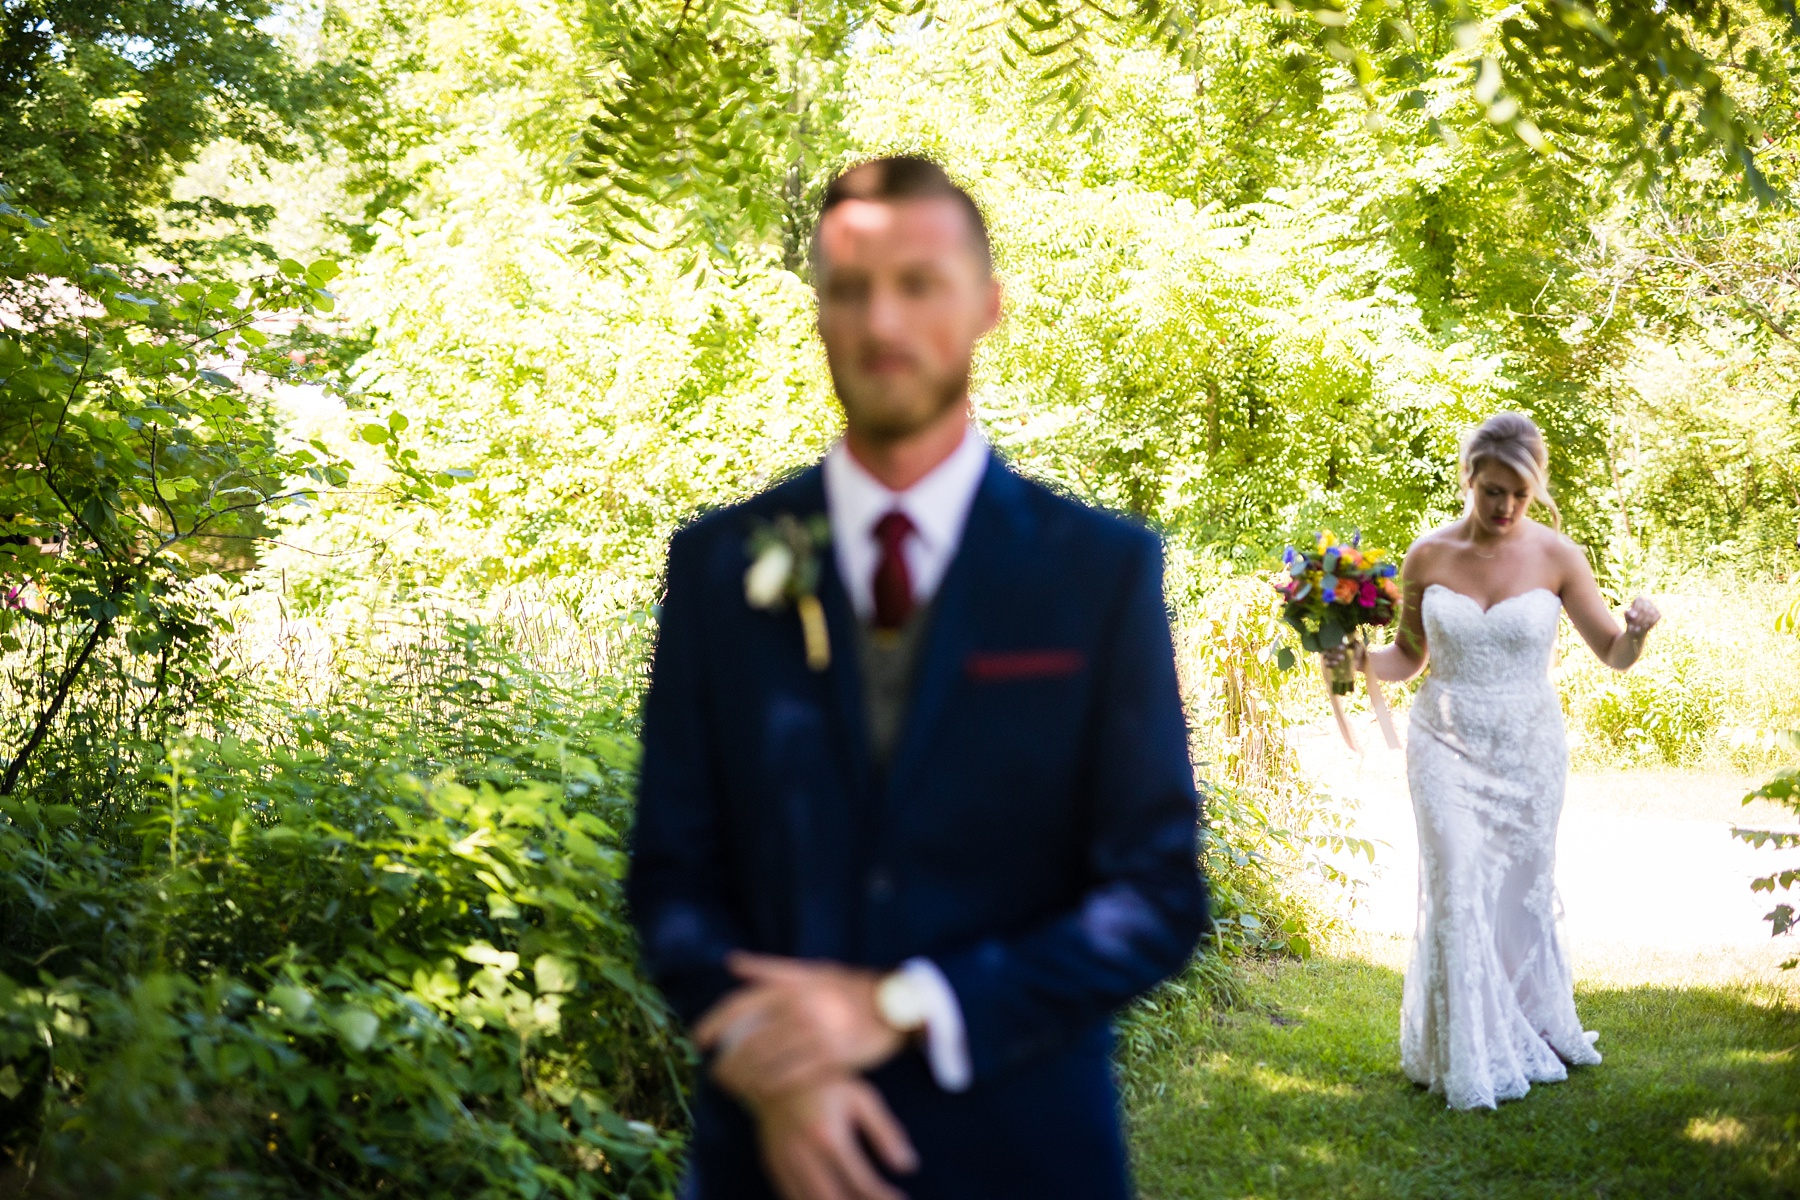 Brandon_Shafer_Photography_Millcreek_Wilde_Barn_Wedding_0019.jpg